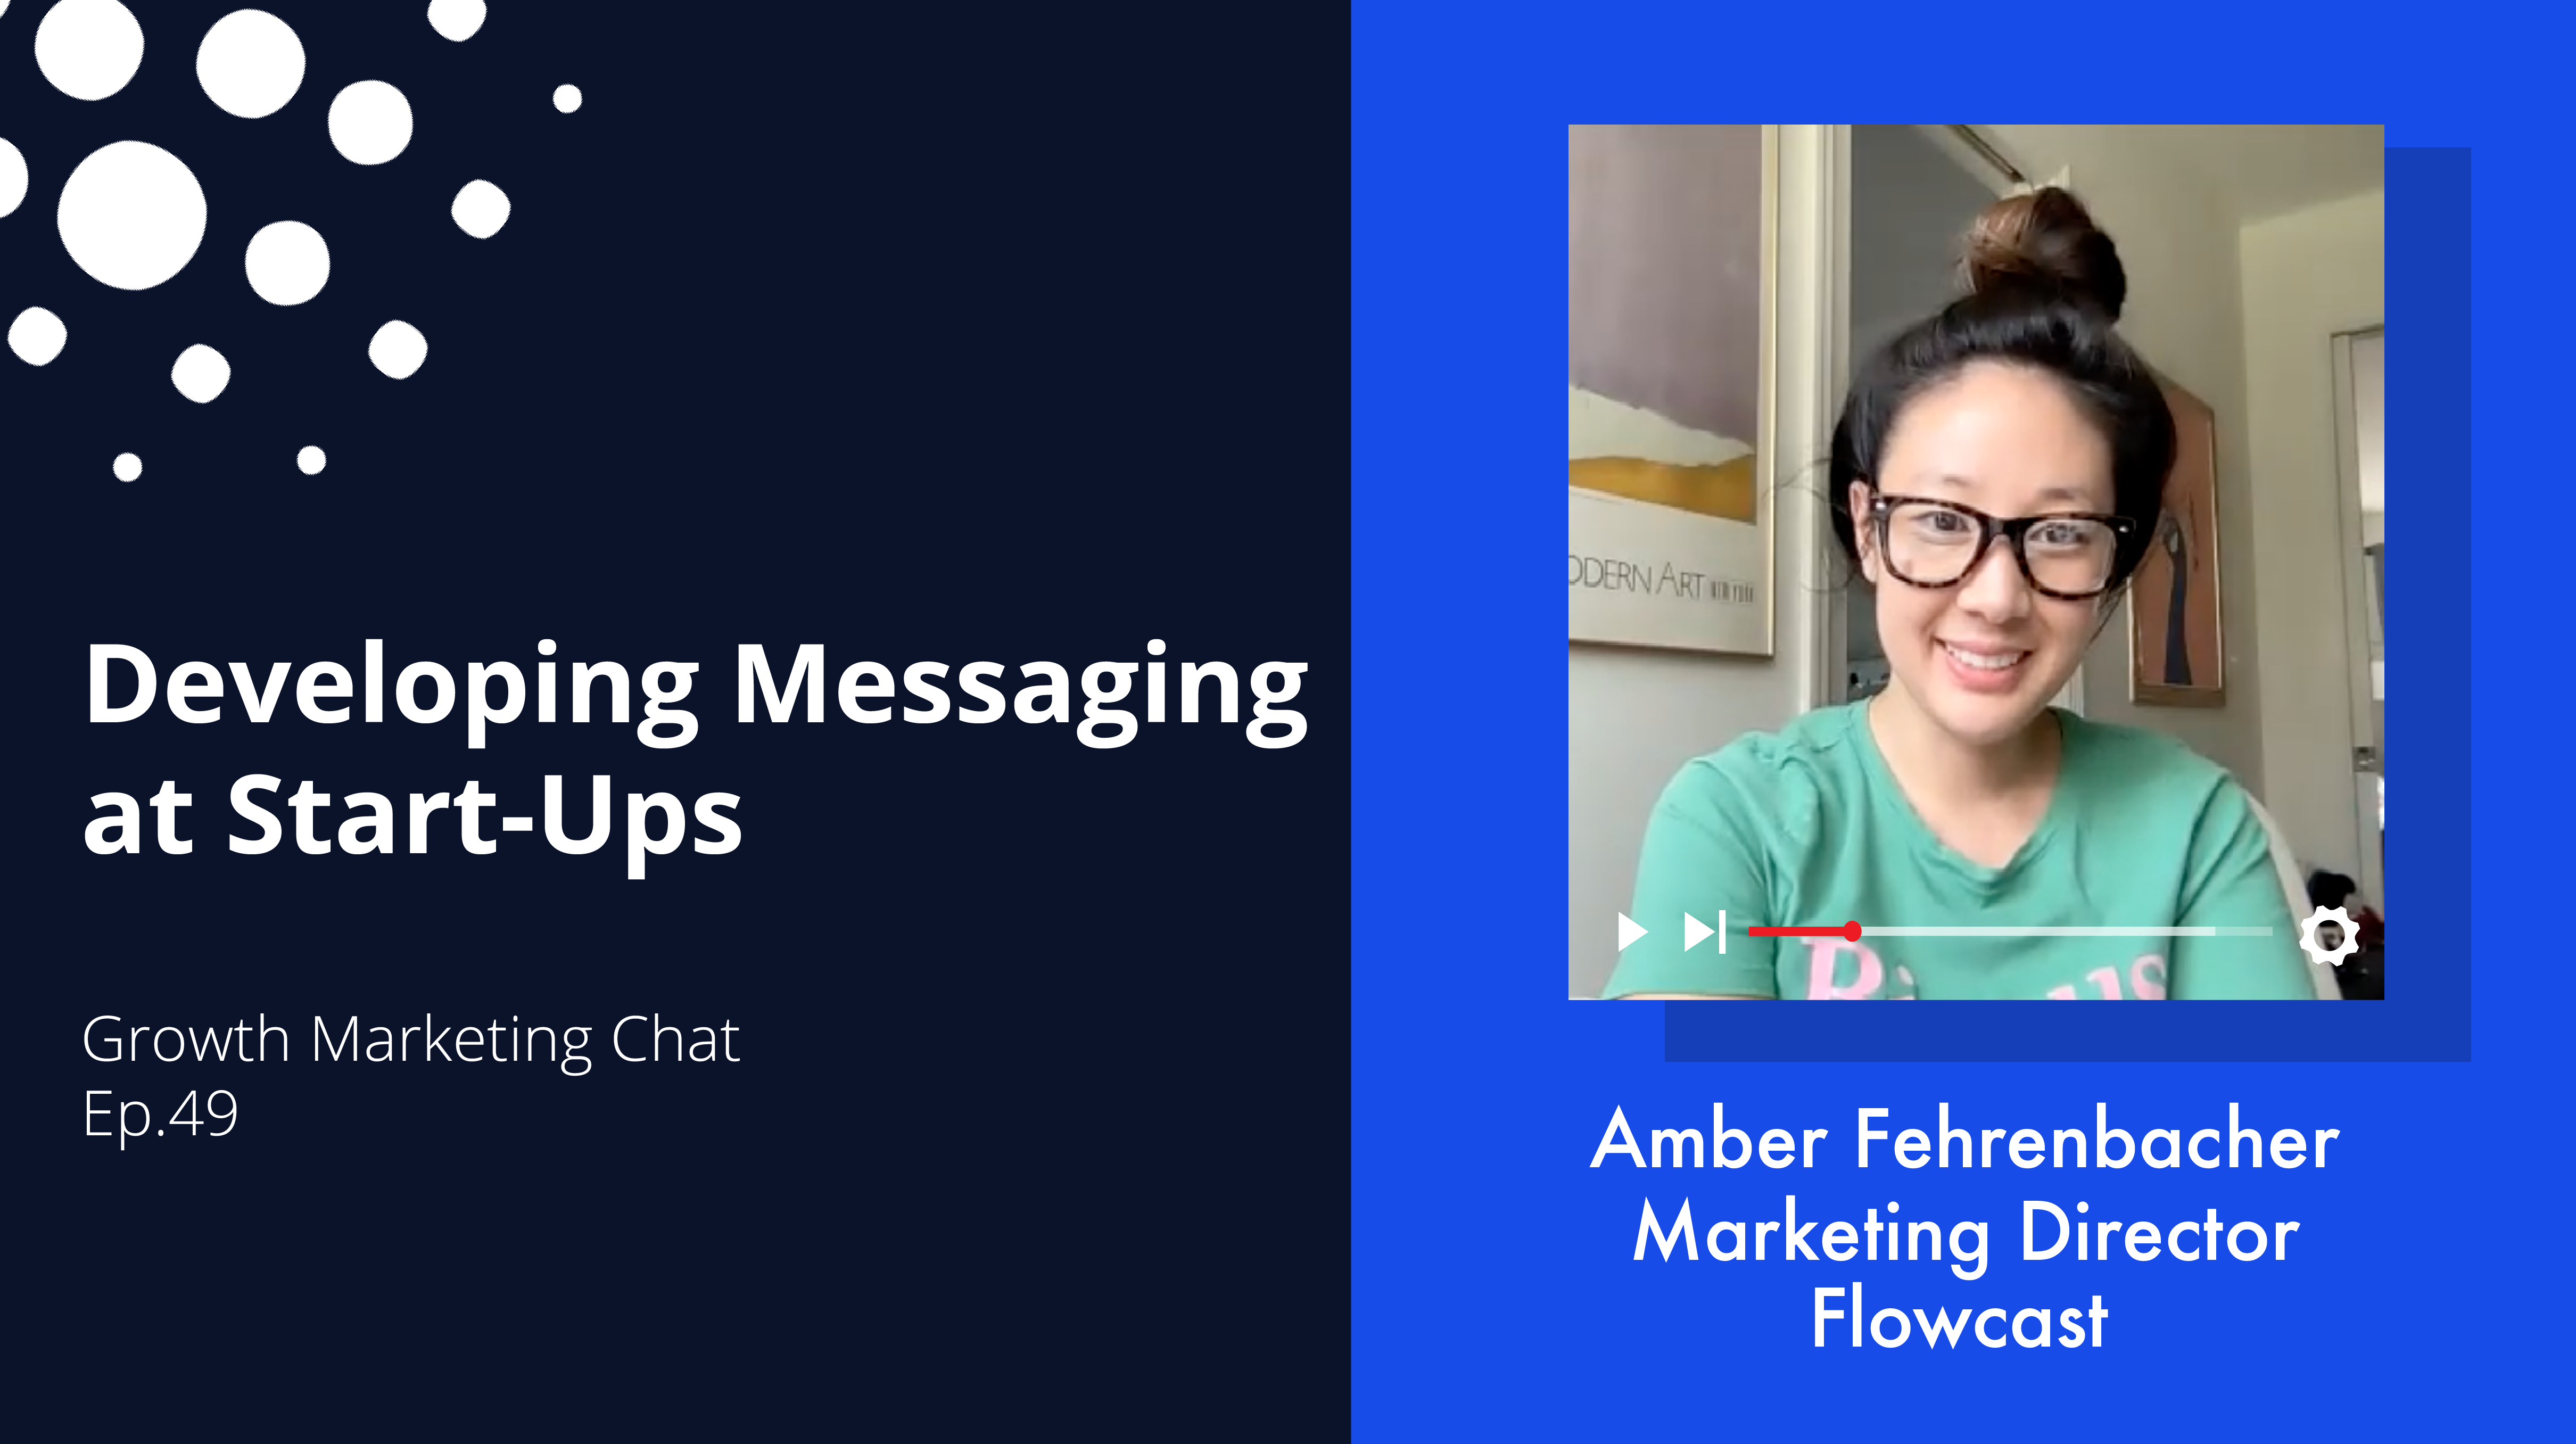 Start-Up Marketing: 3 Keys to Develop Messaging for Your Product